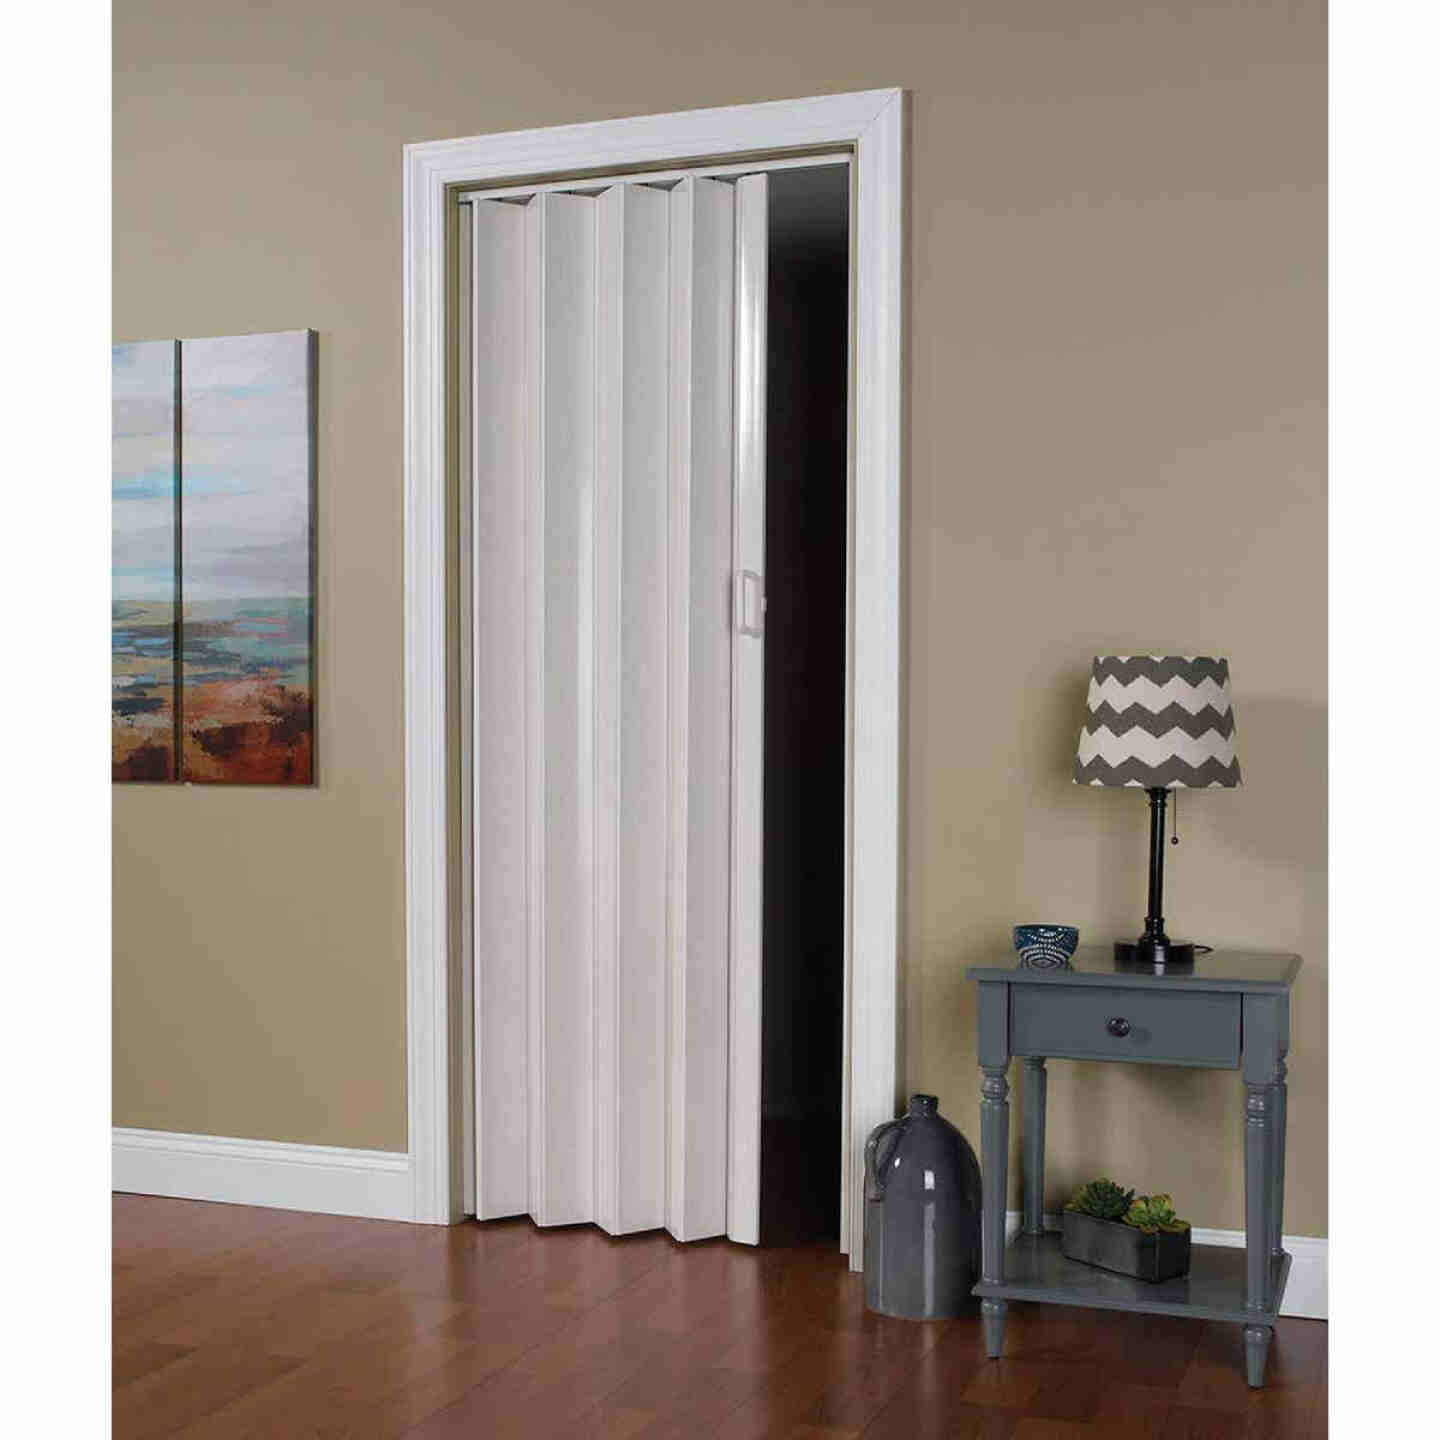 Spectrum Oakmont 36 In. W. x 80 In. H. White Accordion Folding Door Image 1